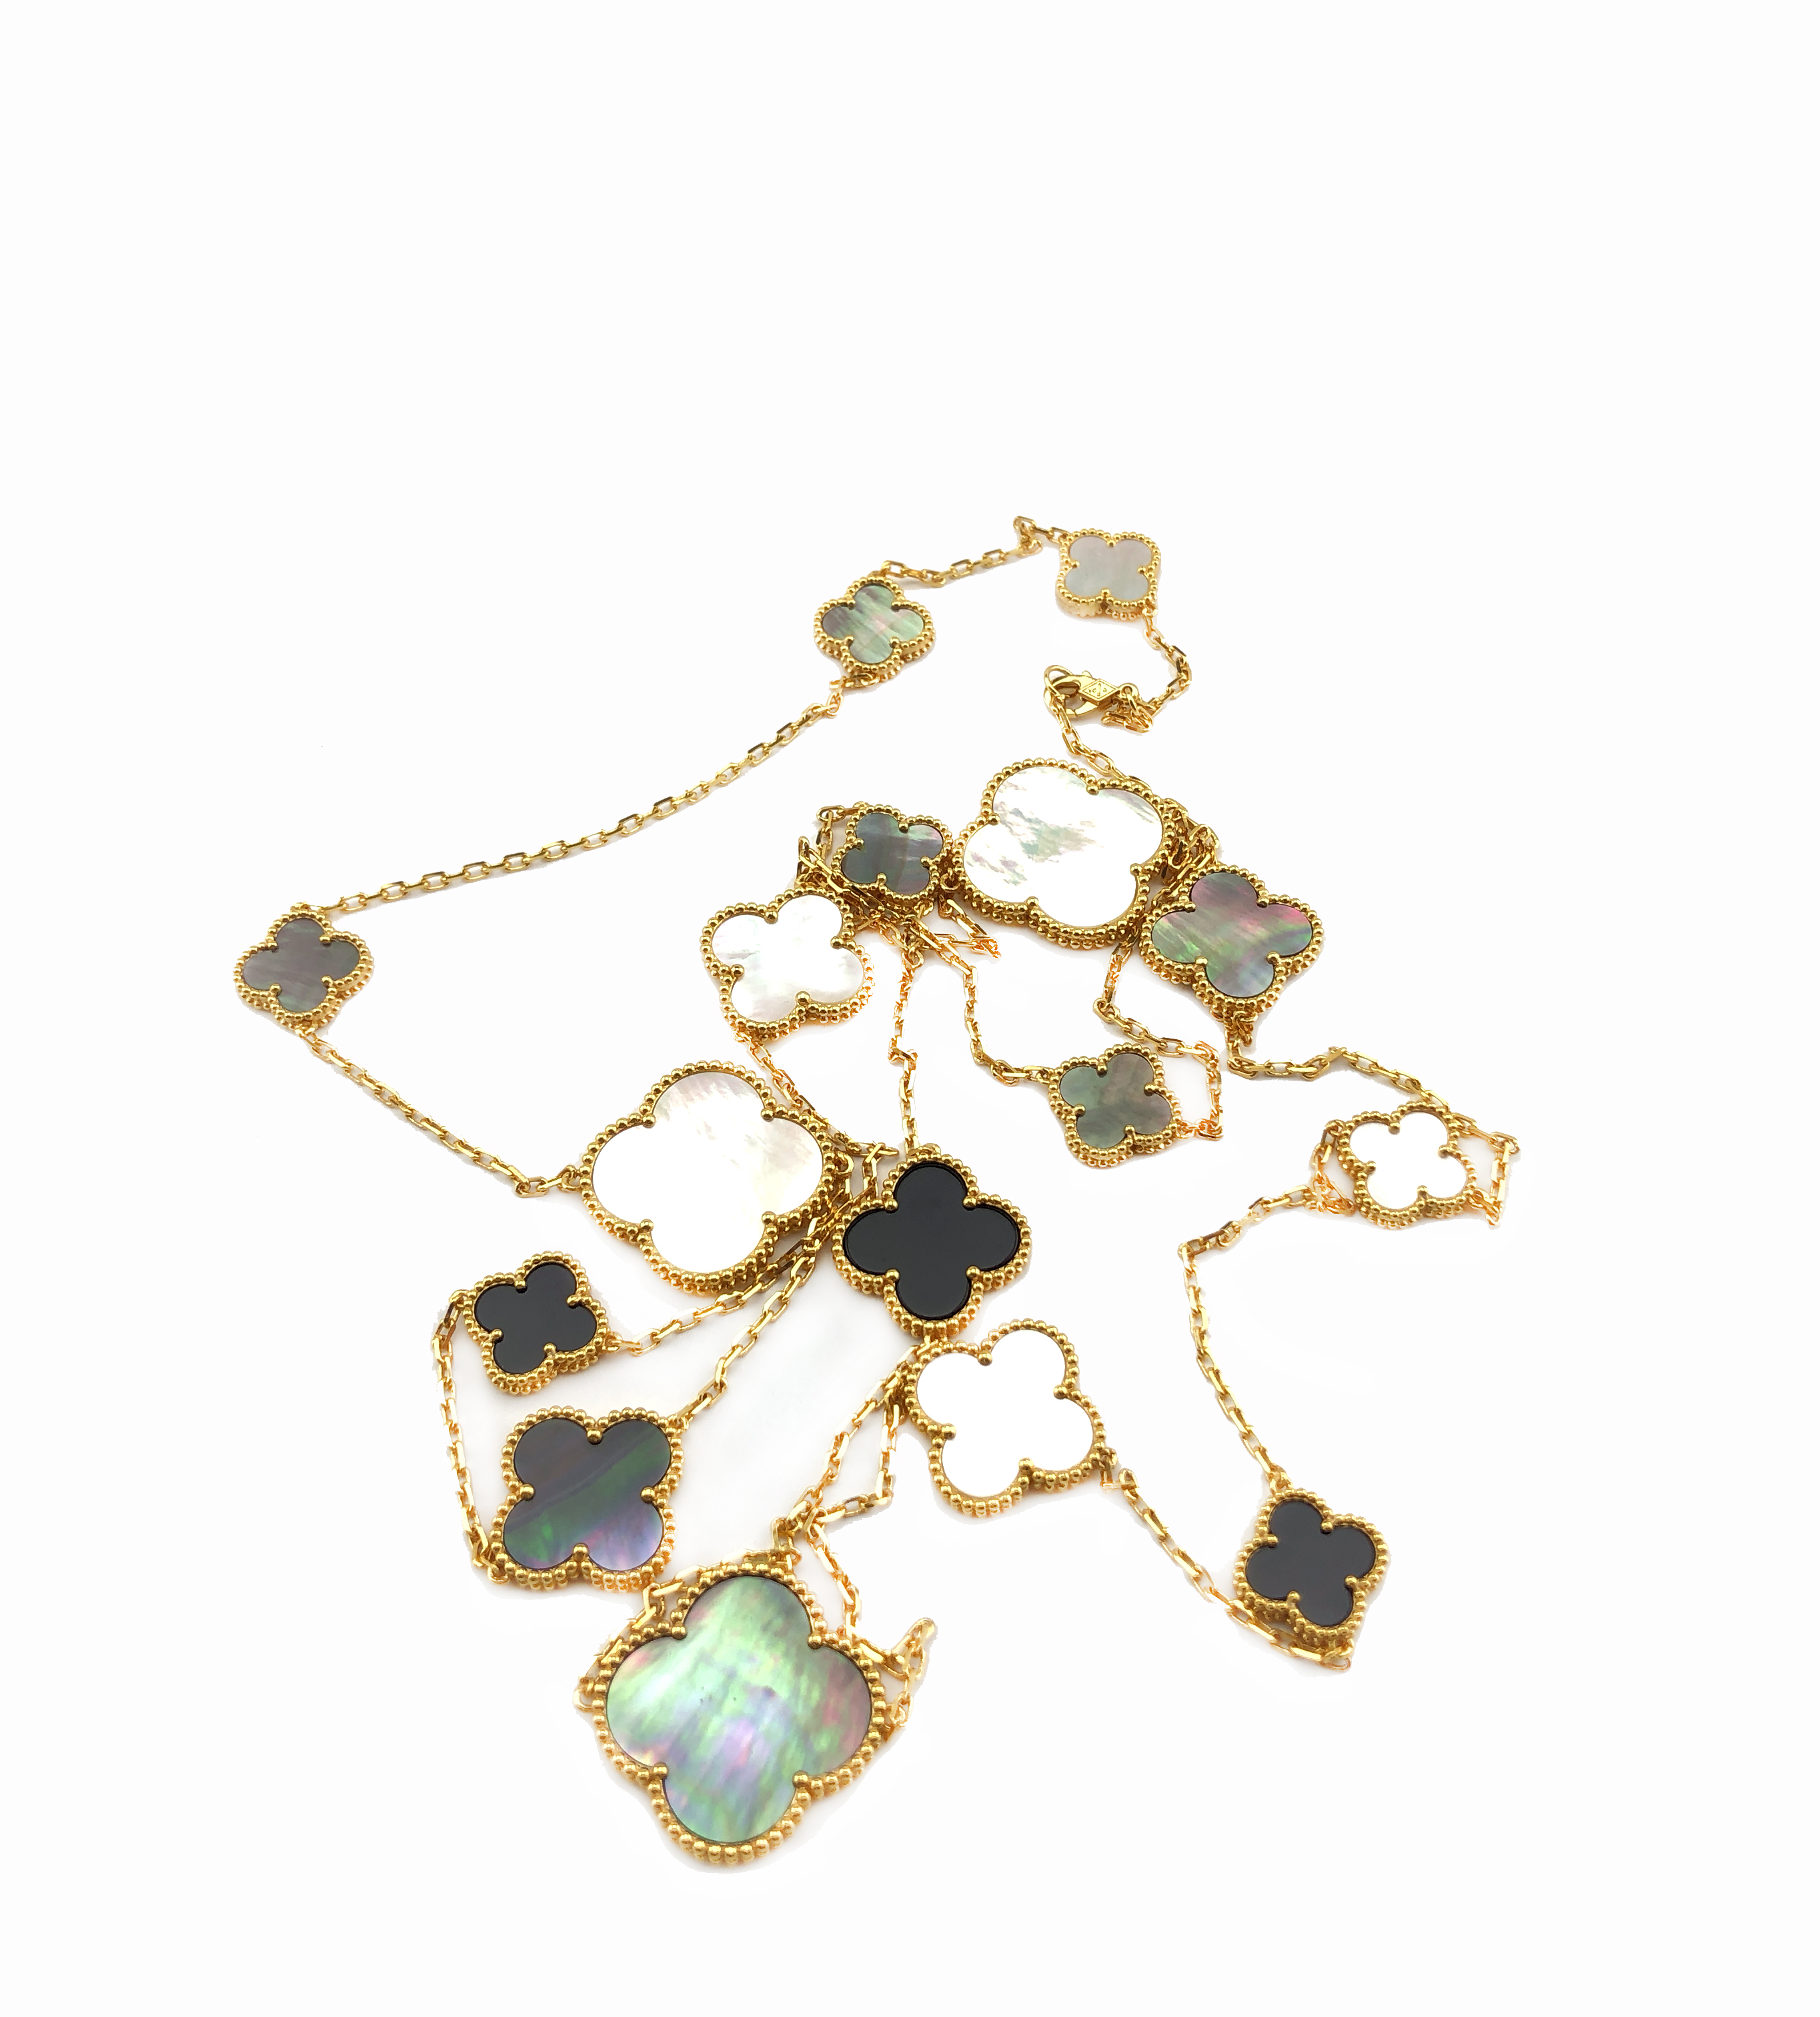 Clover Necklace Van Cleef: 18K Gold Plated Large Clover Necklace 16 Motifs Inspired